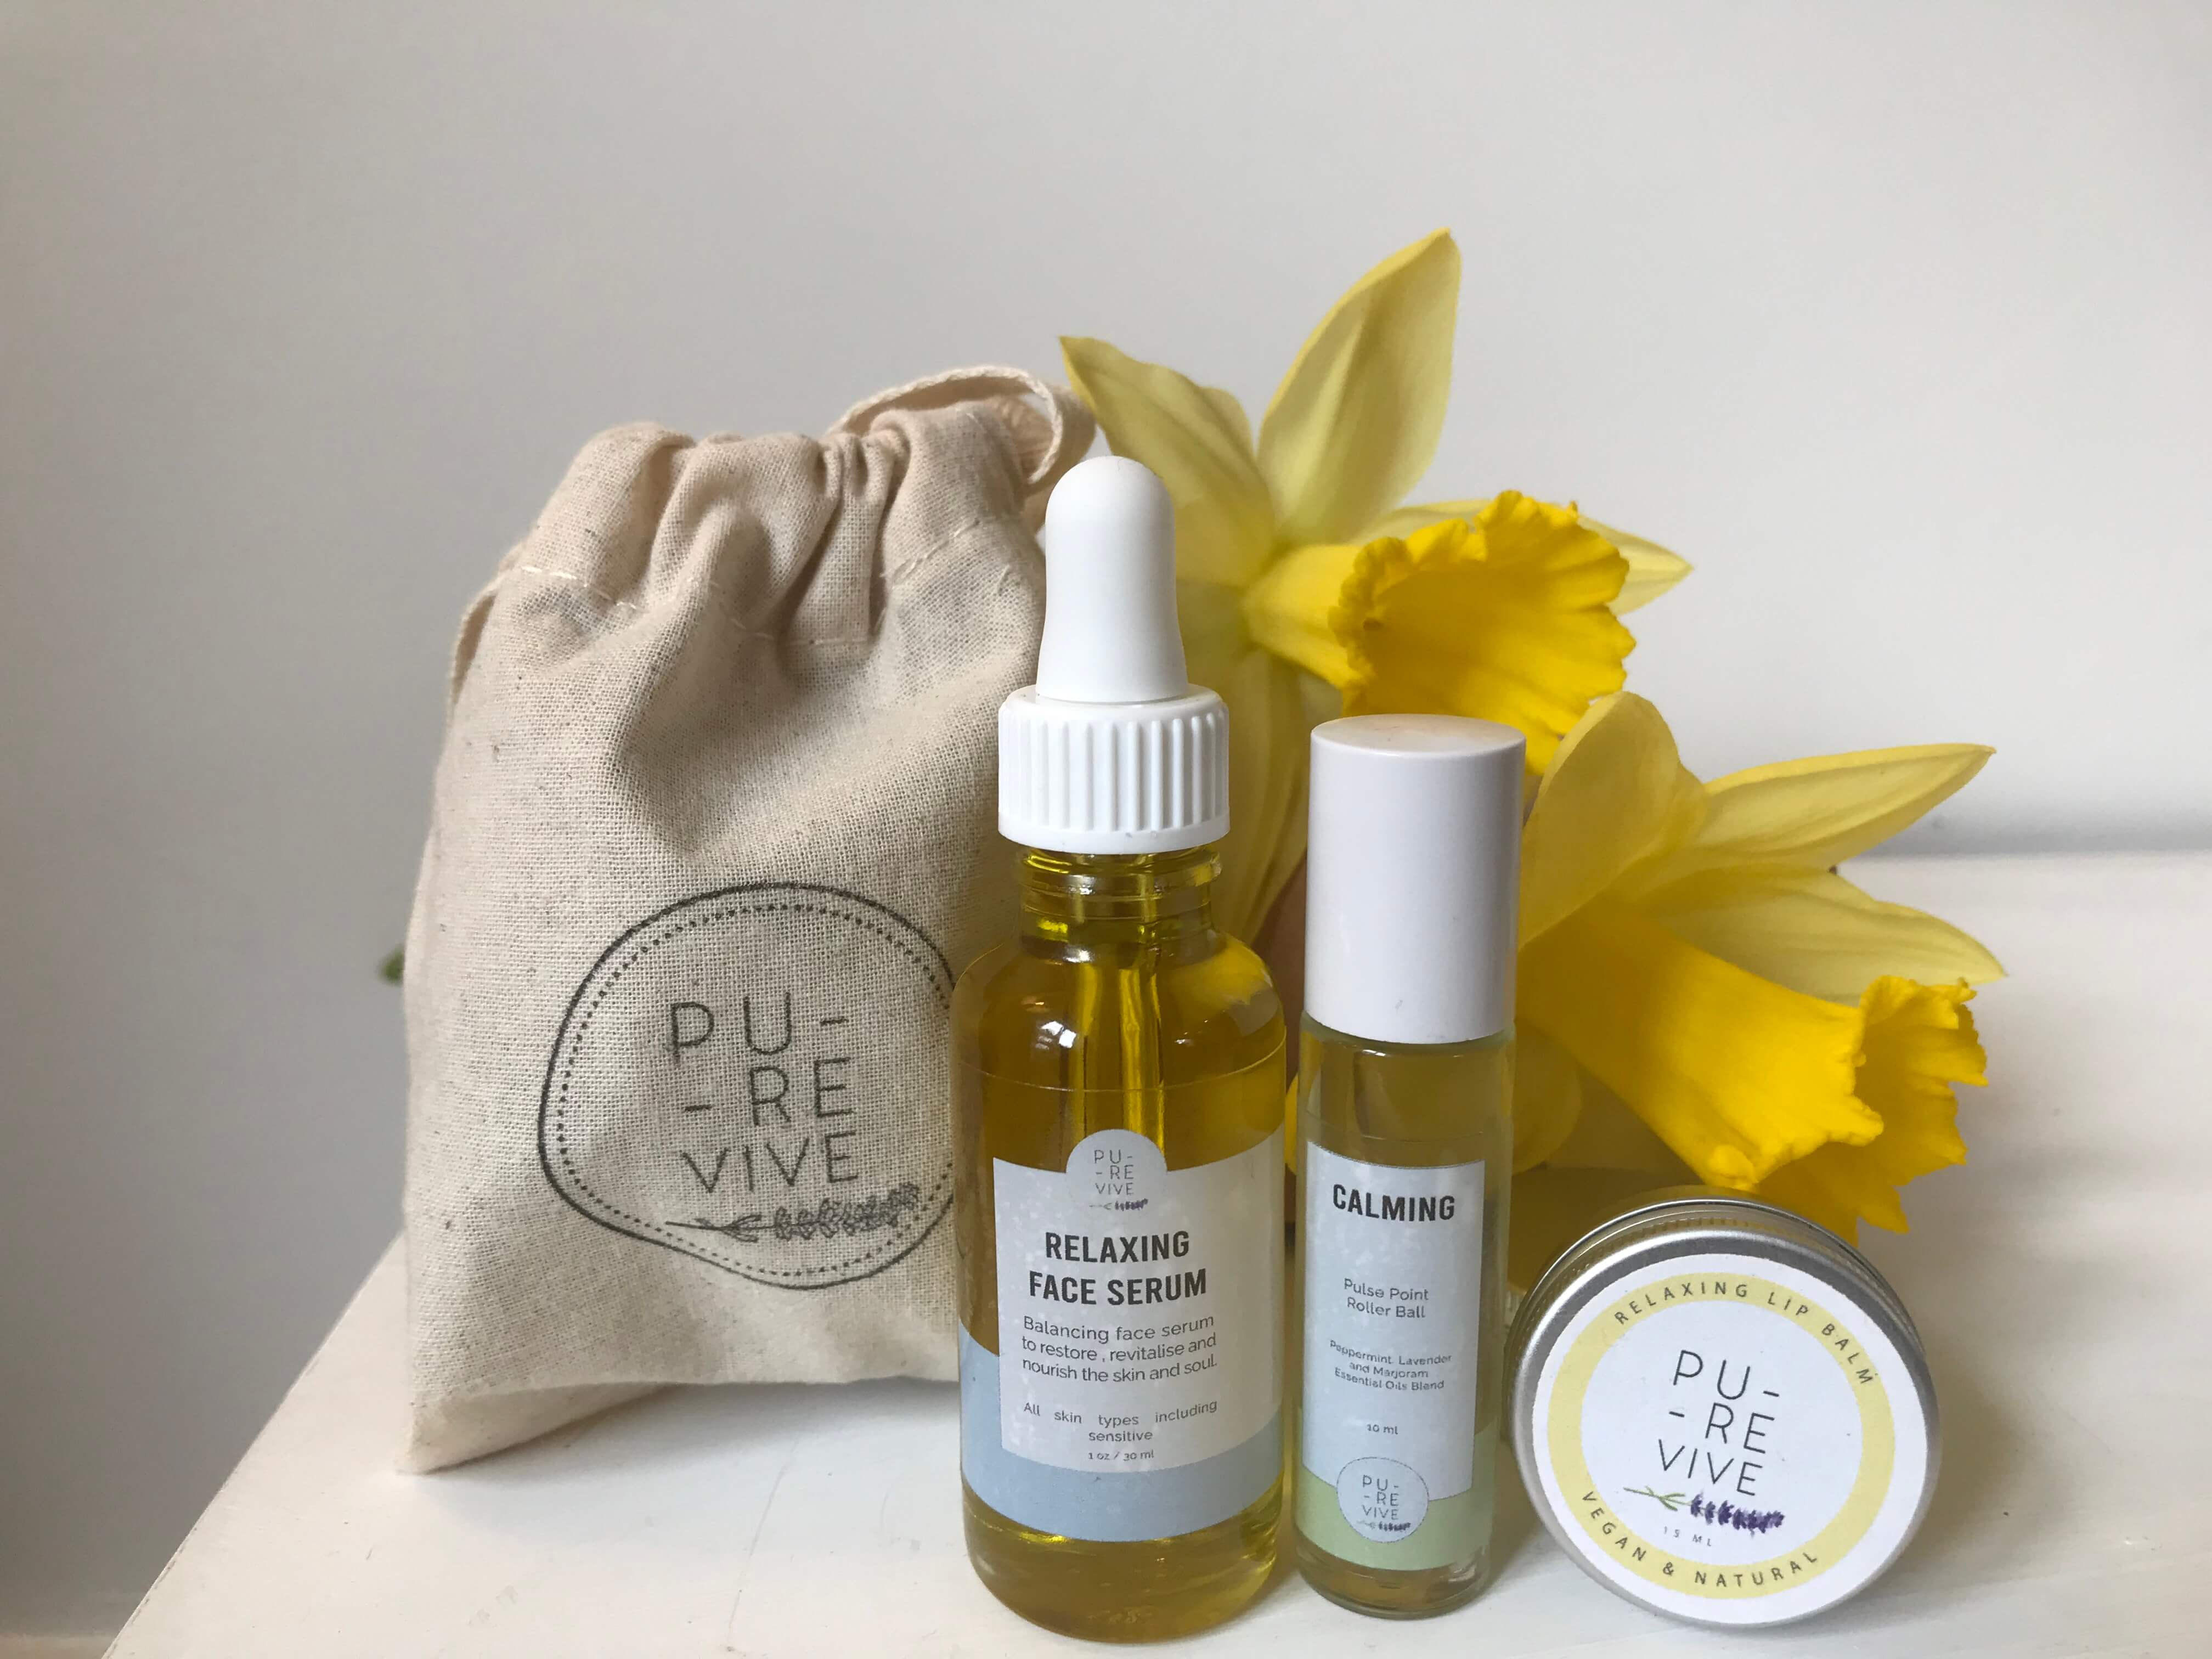 Relax Sleep Pack - Relaxing Face Serum, Pulse Point Oil and Vegan Lip Balm